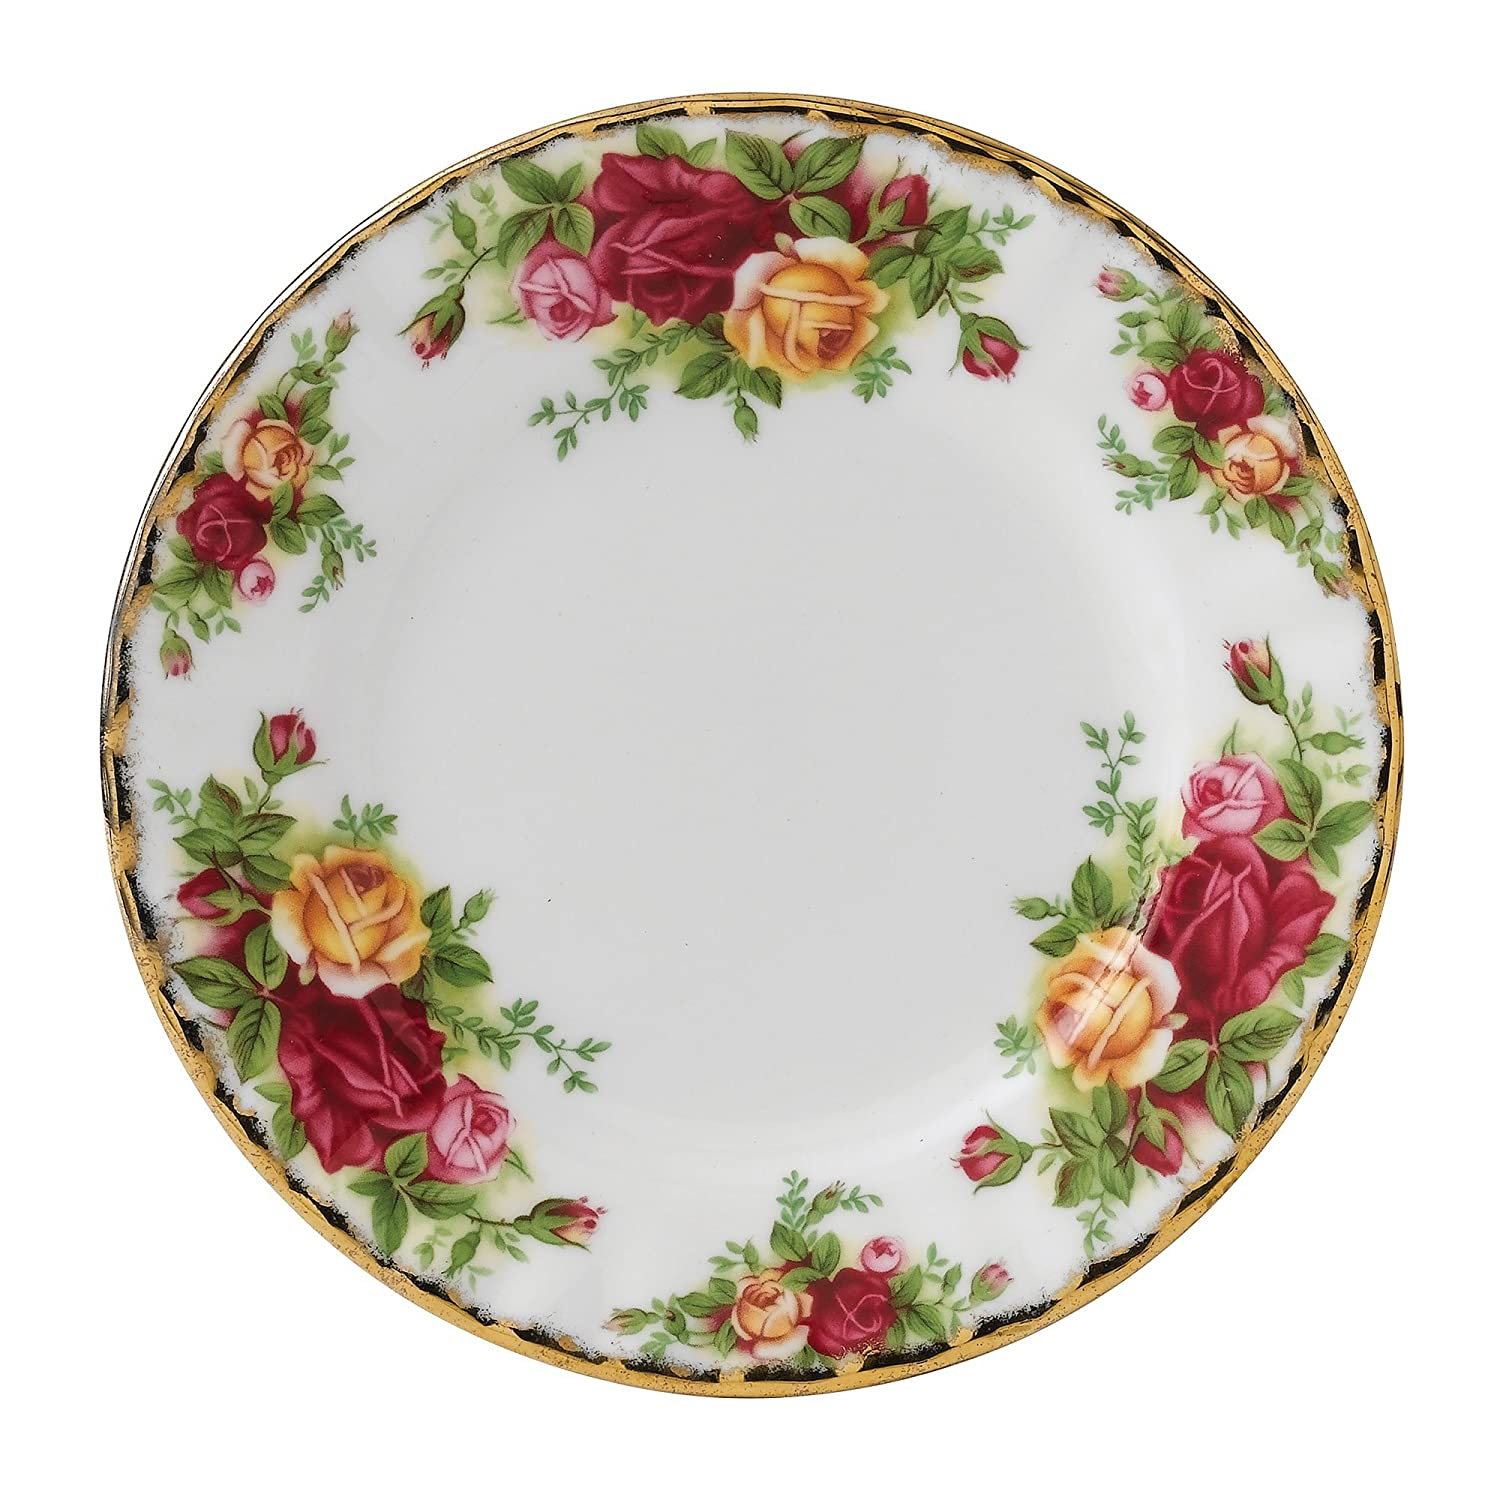 Royal Albert Old Country Roses Bread and Butter Plate 15210008